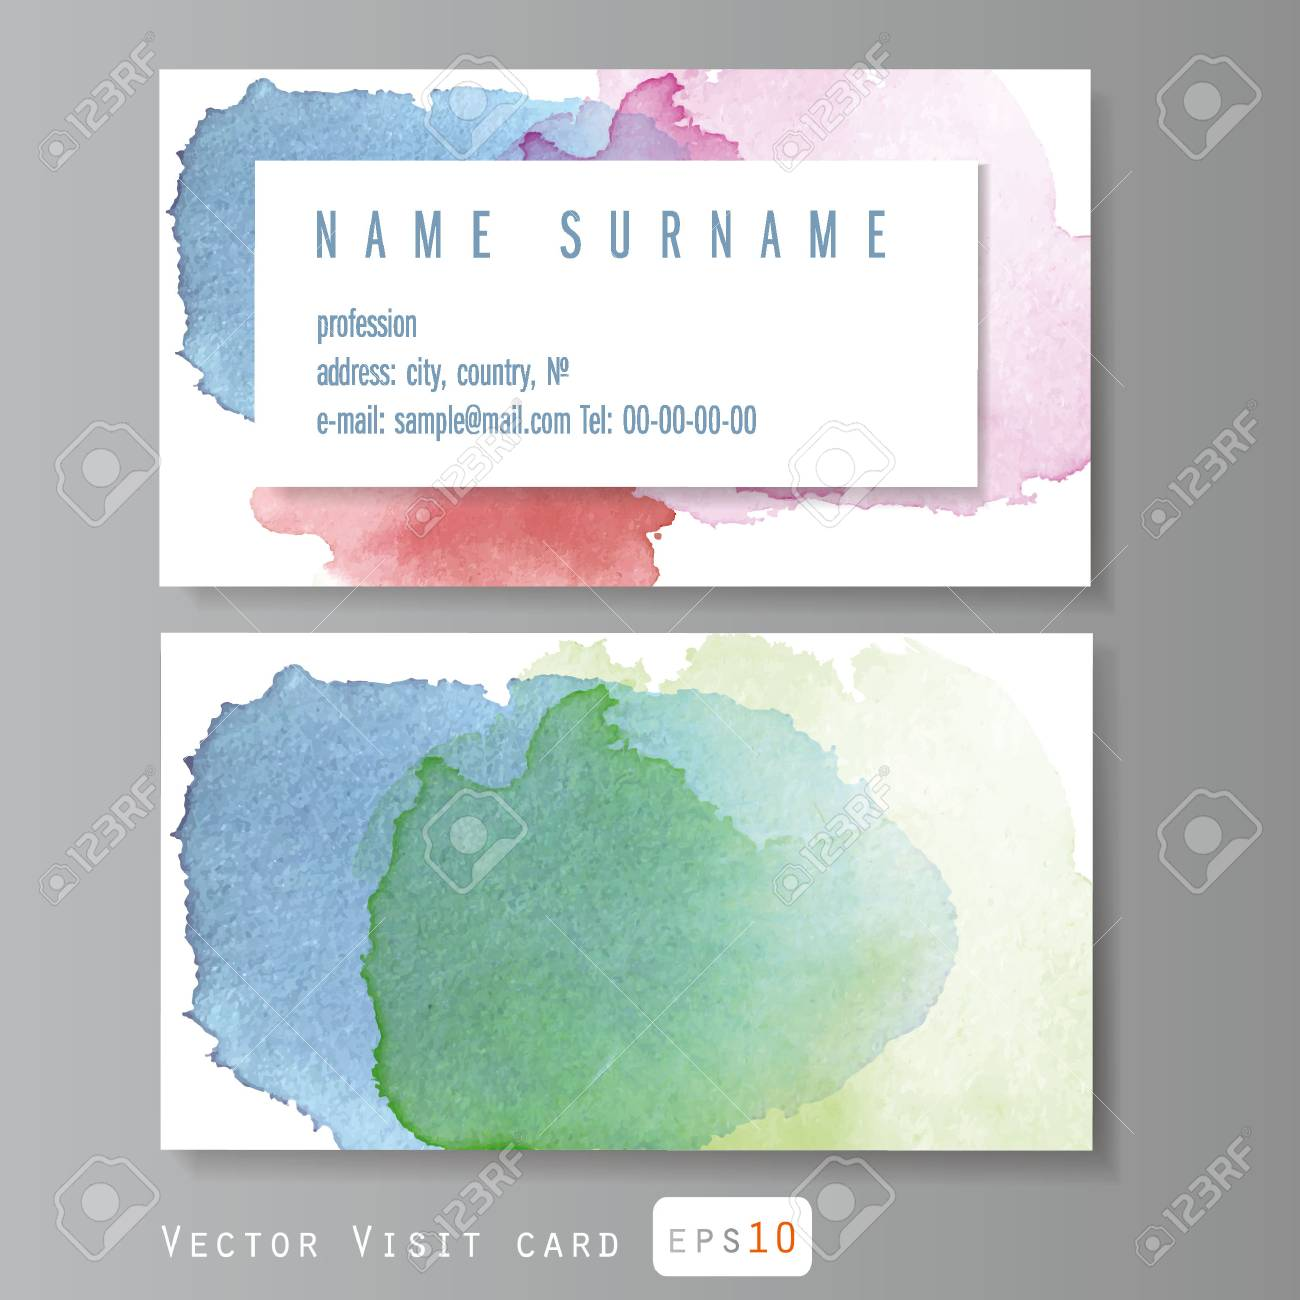 Vintage Simple Business Card Vector Template, With Watercolor ...